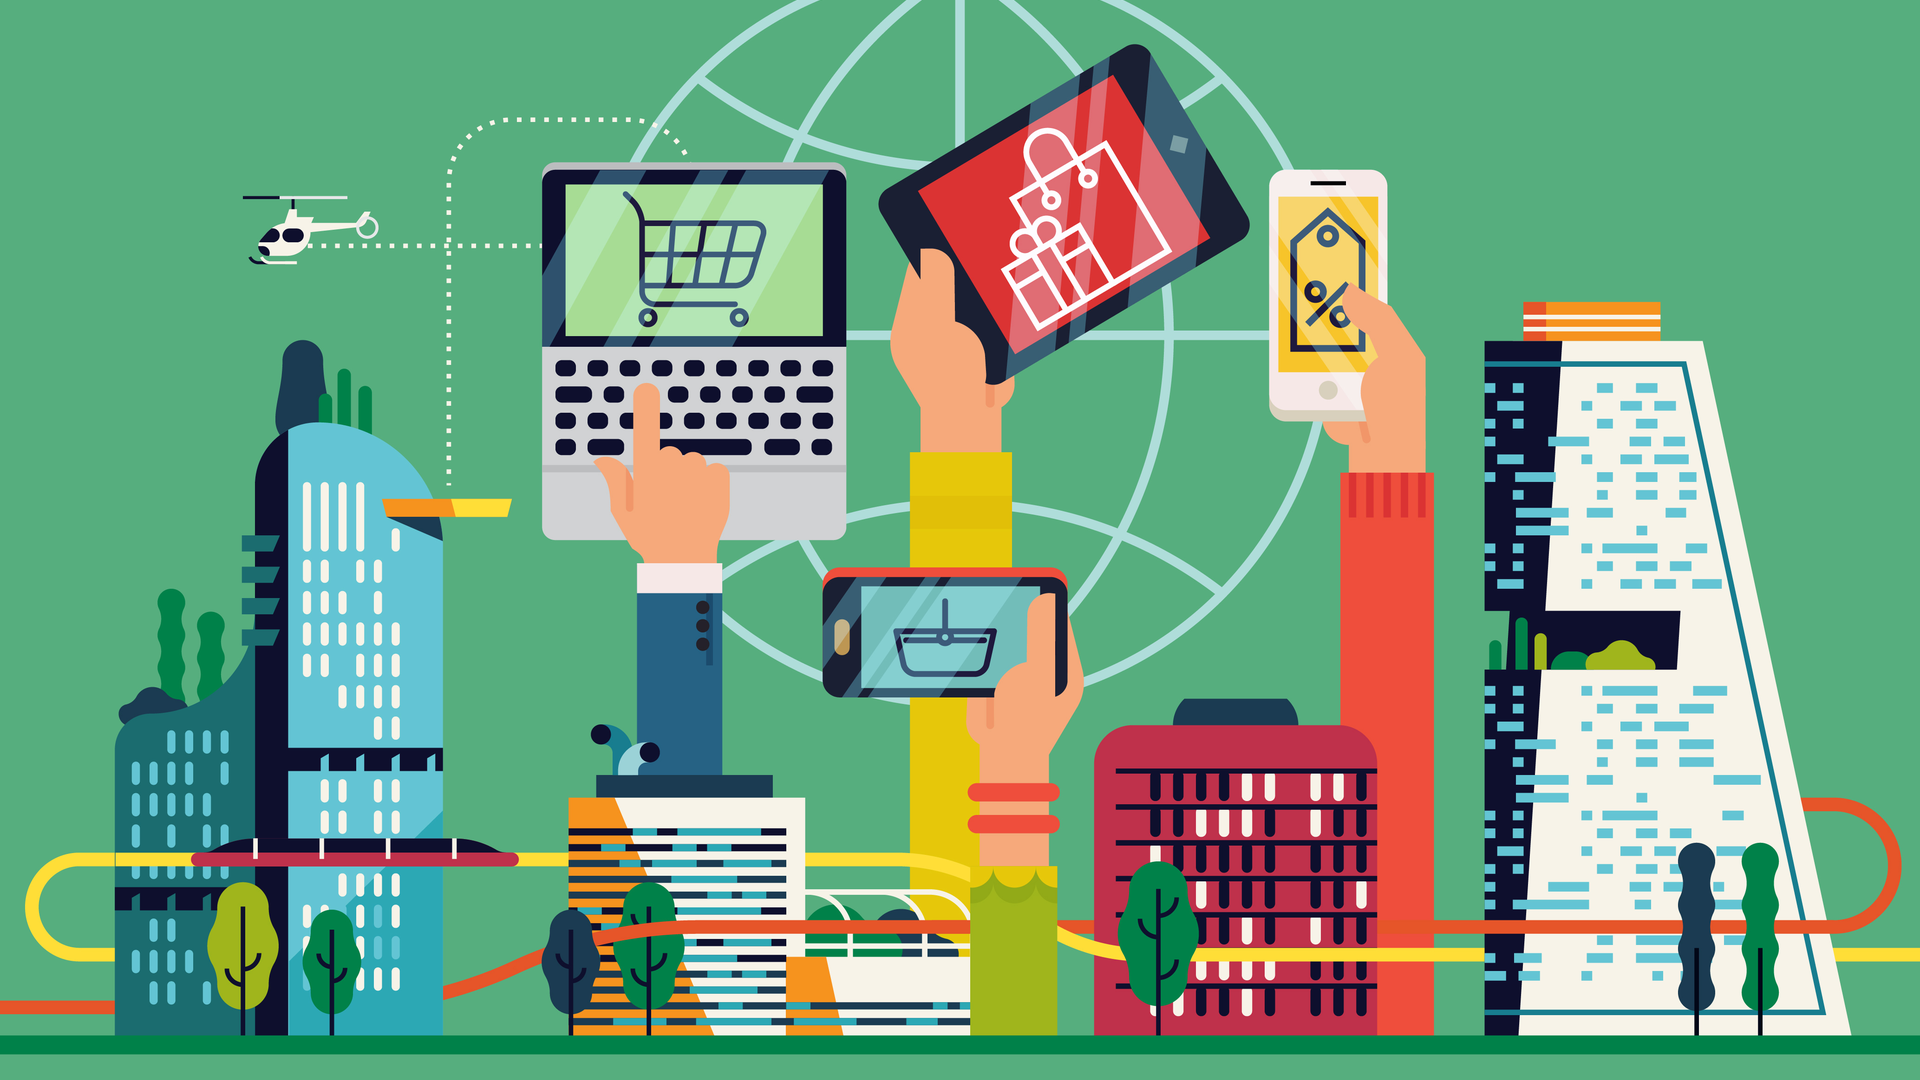 Making New Waves: The Rising Use Of Tech In Fashion Retail